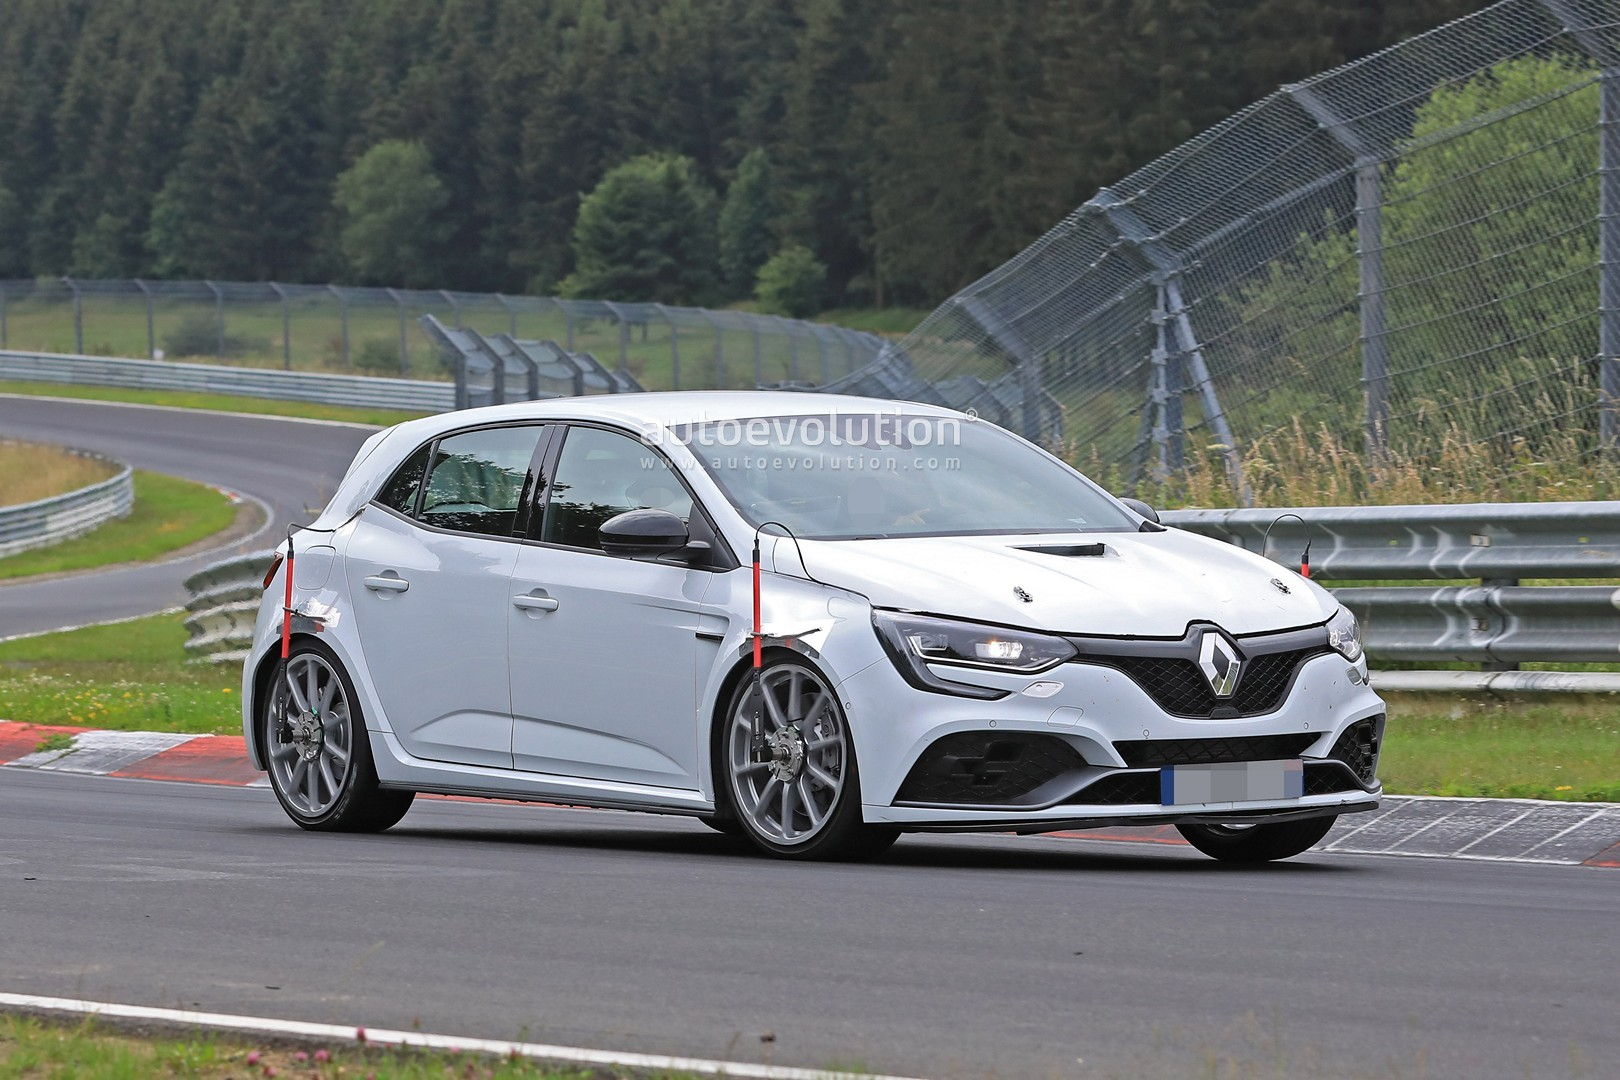 2017 - [Renault] Megane IV R.S. - Page 23 New-megane-rs-trophy-spied-at-the-nurburgring-with-vented-hood-no-rear-seats_4